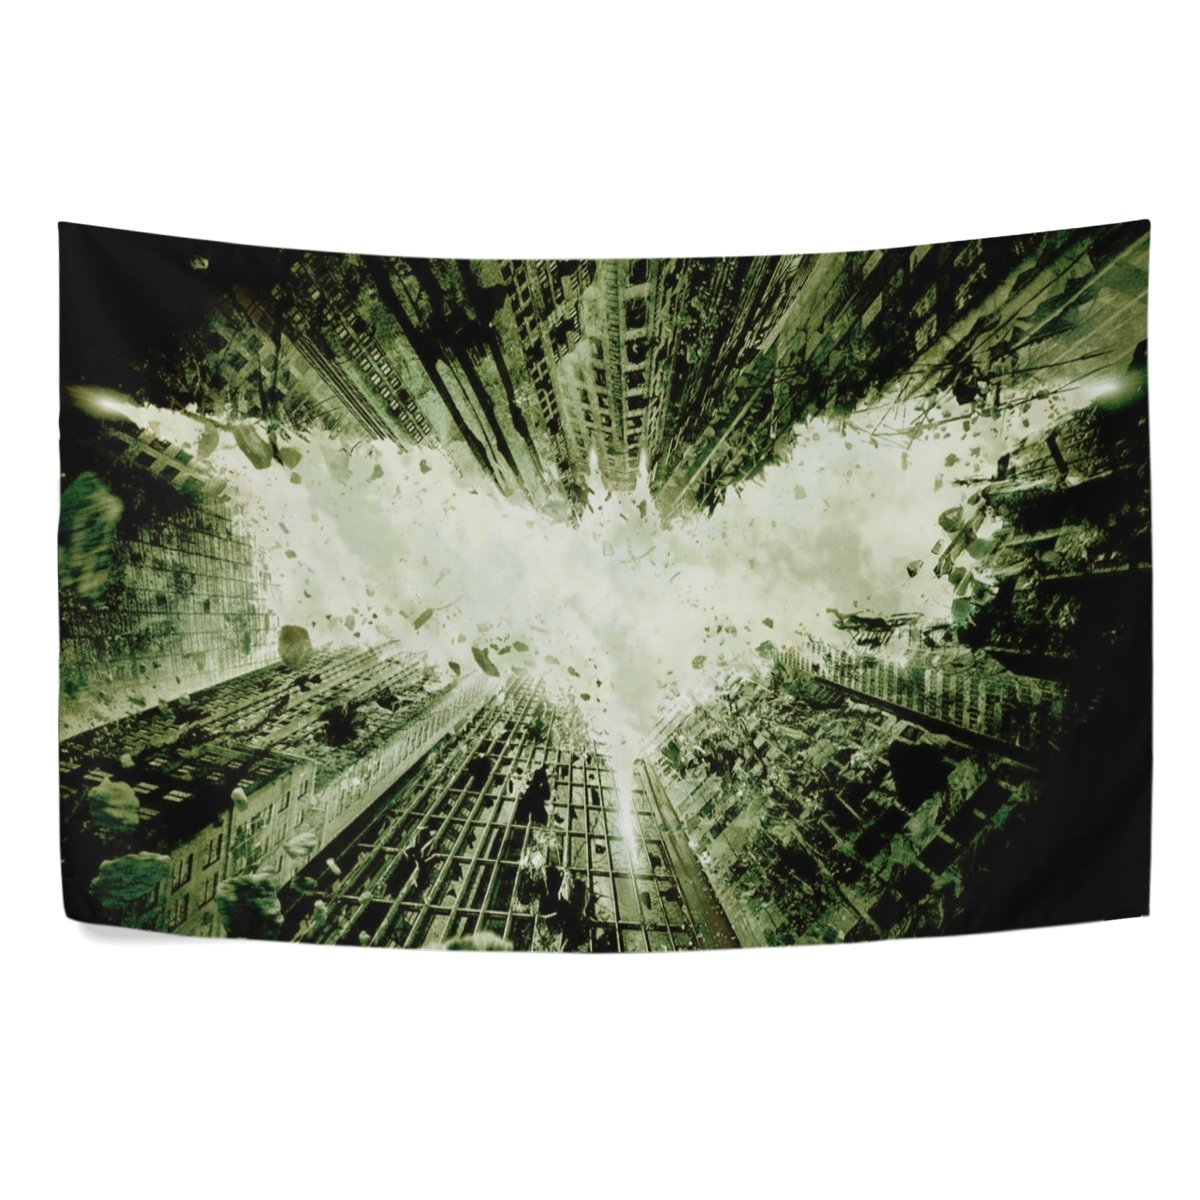 Silva Green Bat Tapestry wall Hanging Wall Tapestry Black and White Tapestry Clean Hippie Tapestry Beach Tapestry Wall Tapestry for Bedroom Green, 60x51 Mabel D